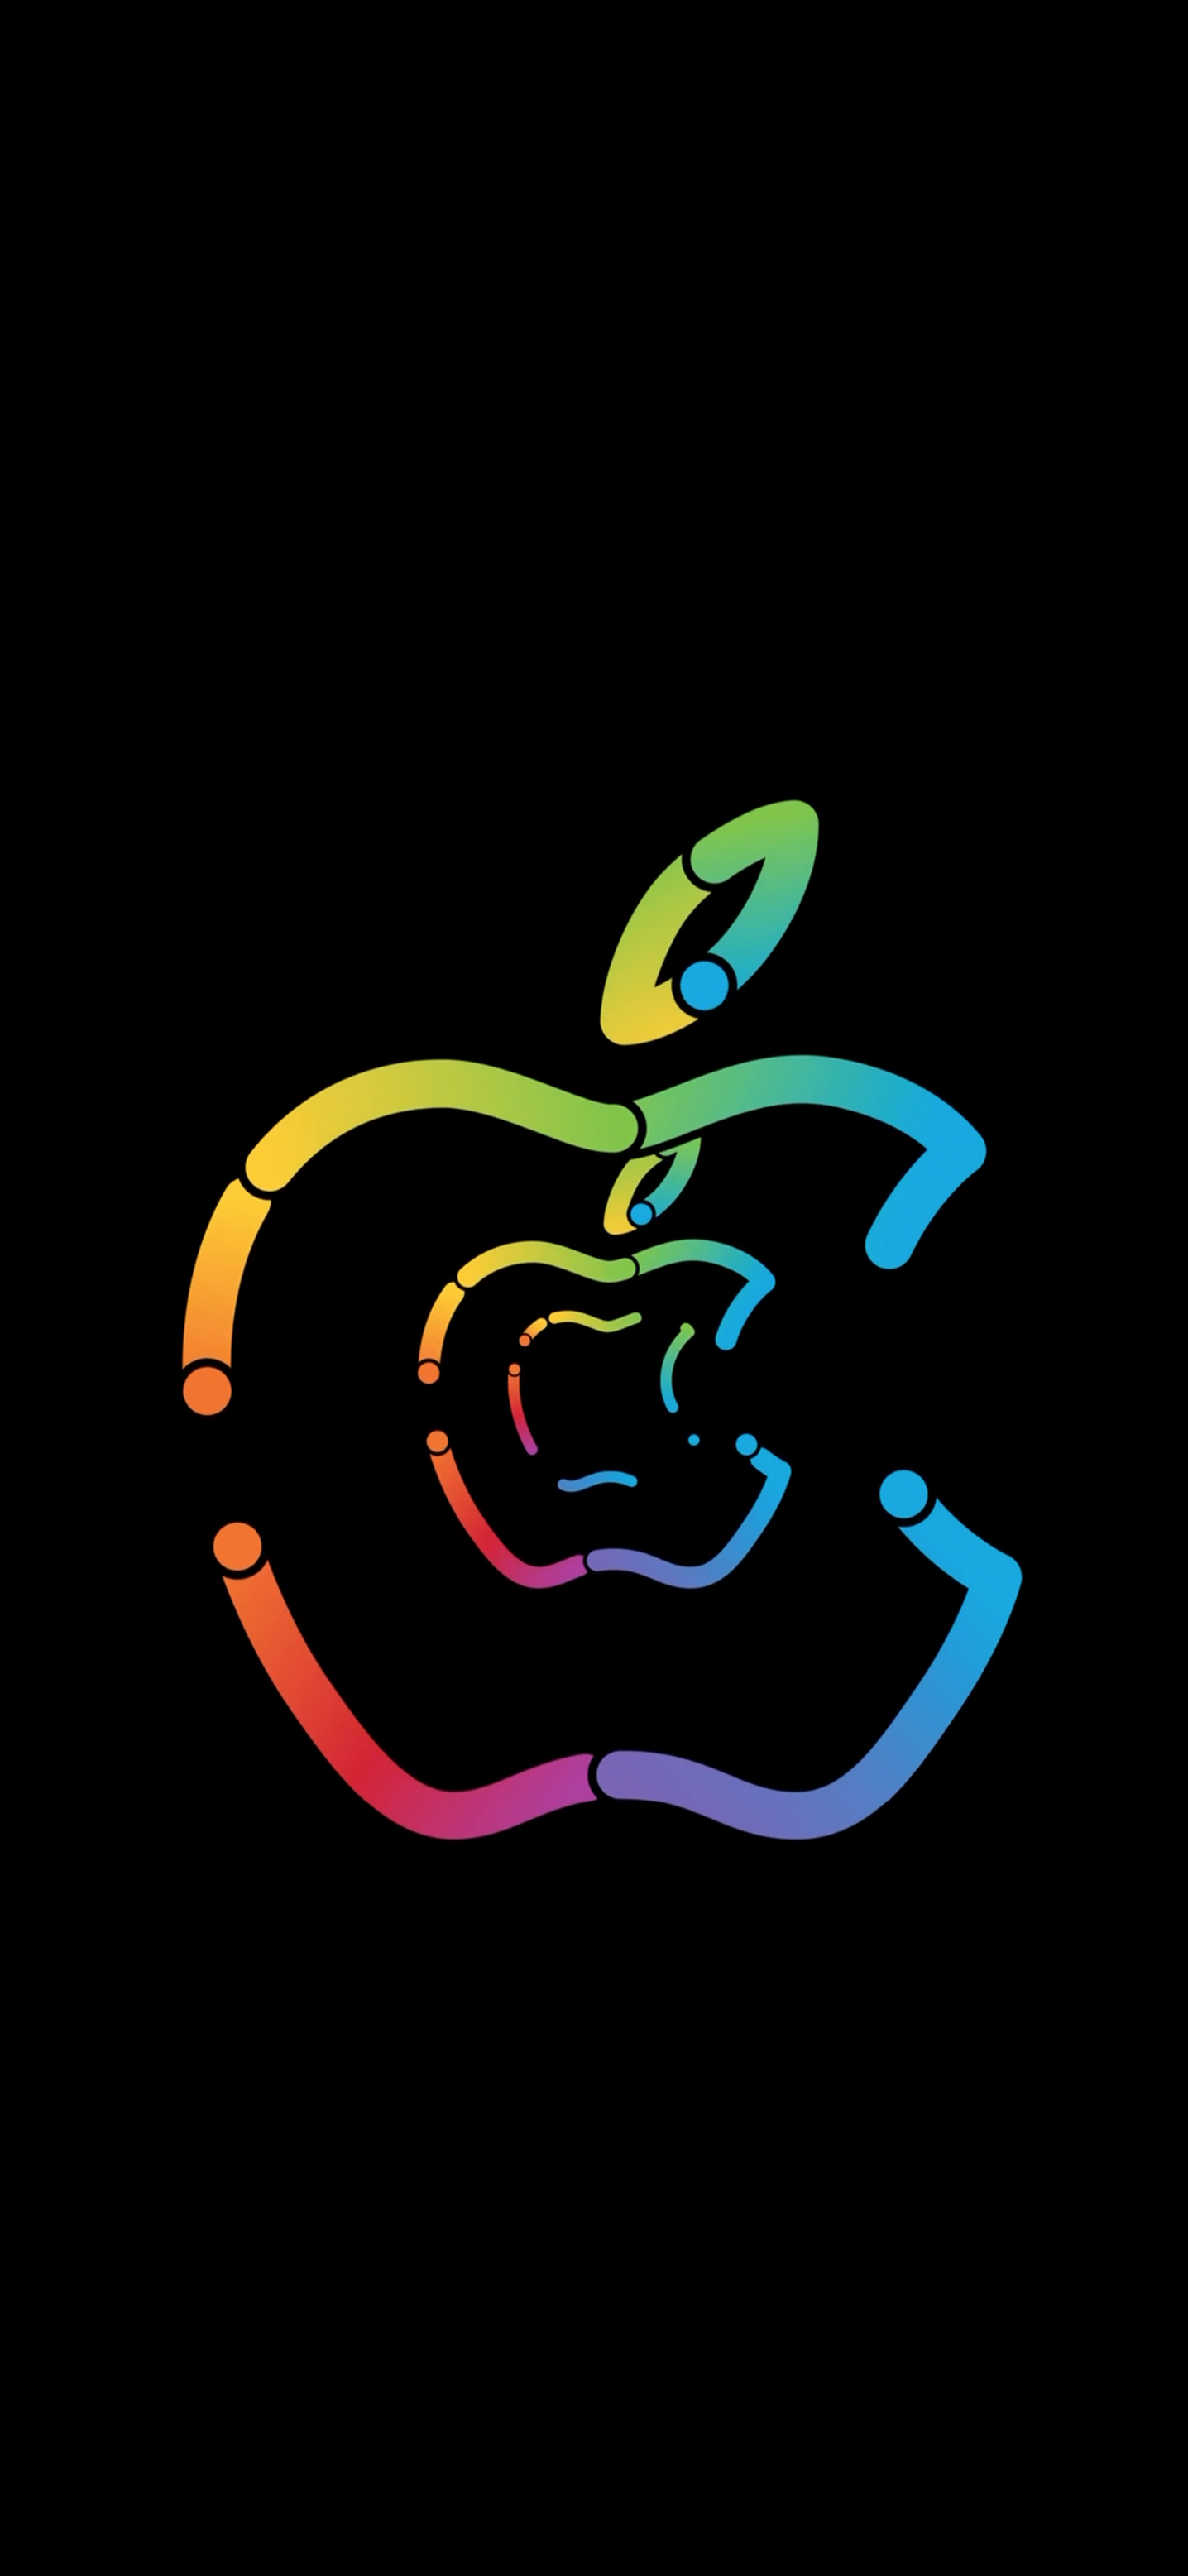 Apple Logo Animation iPhone 11 Promotional [LIVE Wallpaper ...